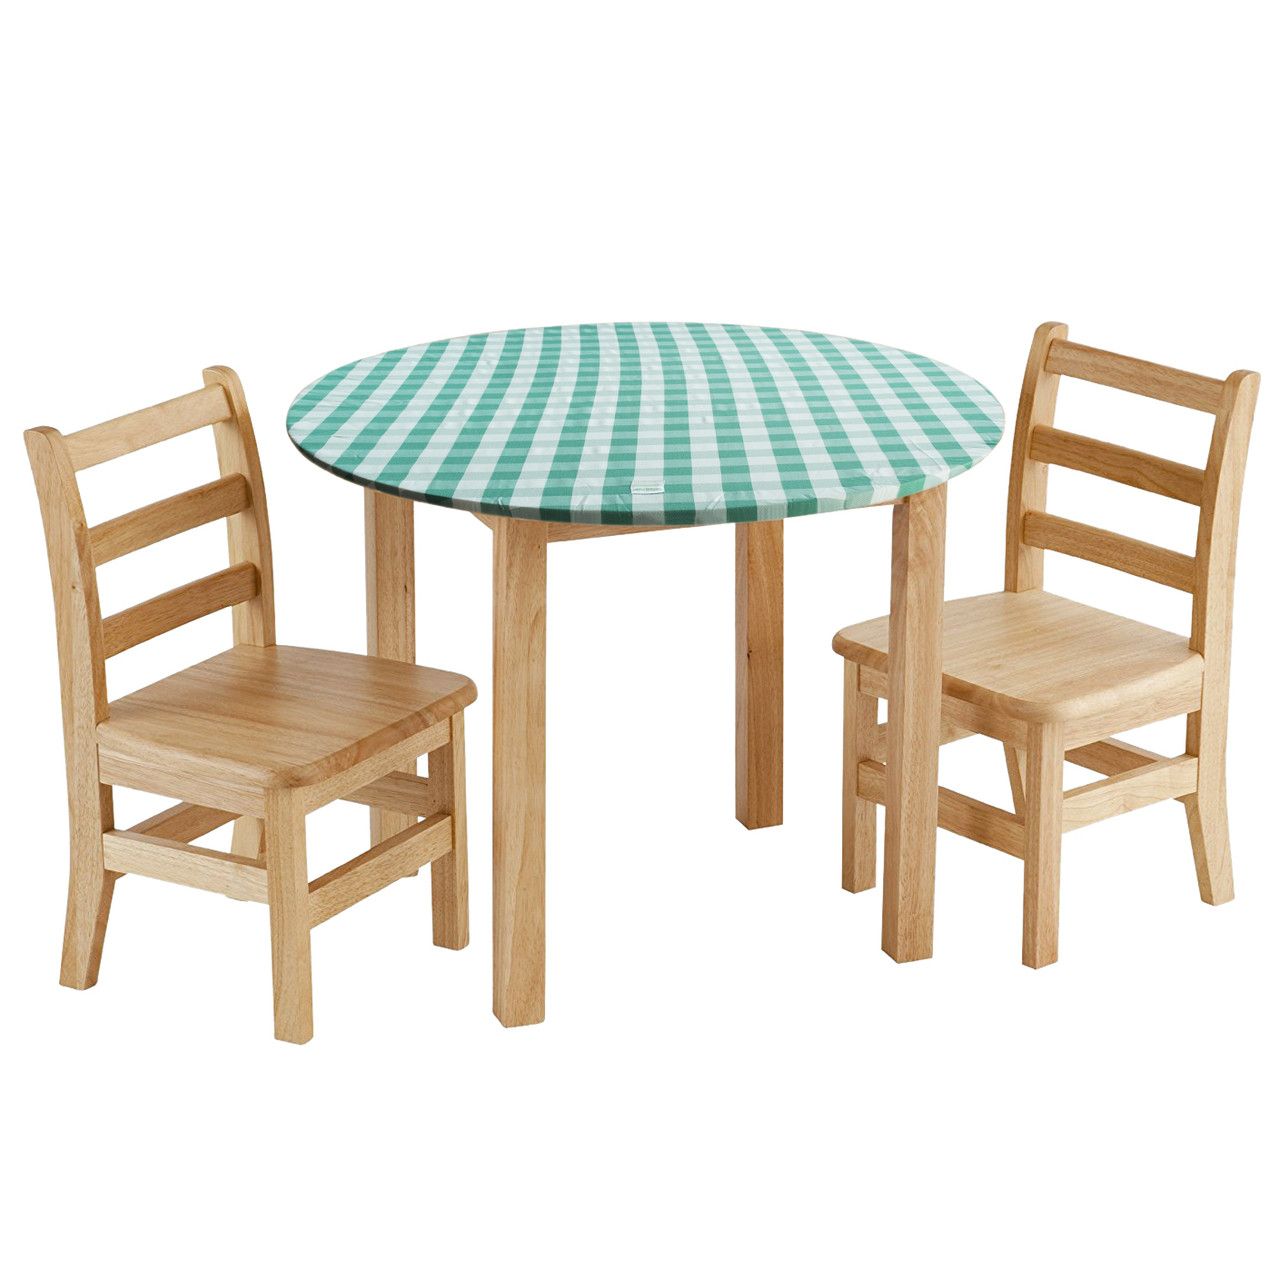 Large Round Table Cloth.Large Round Green Gingham Table Cloth